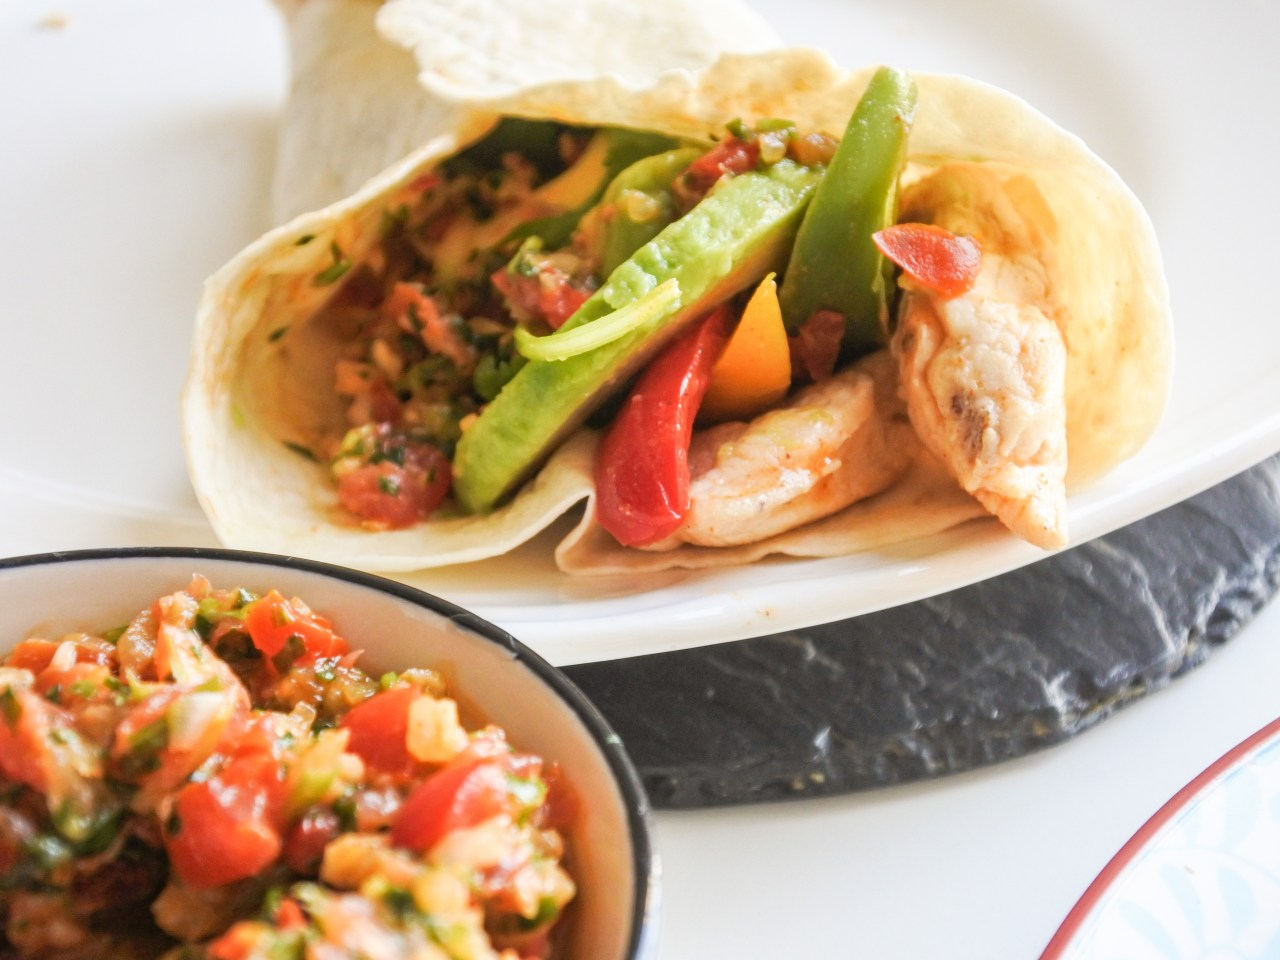 Chicken fajitas, salsa and avocado wrapped around a folded tortilla served alongside a small bowl of salsa